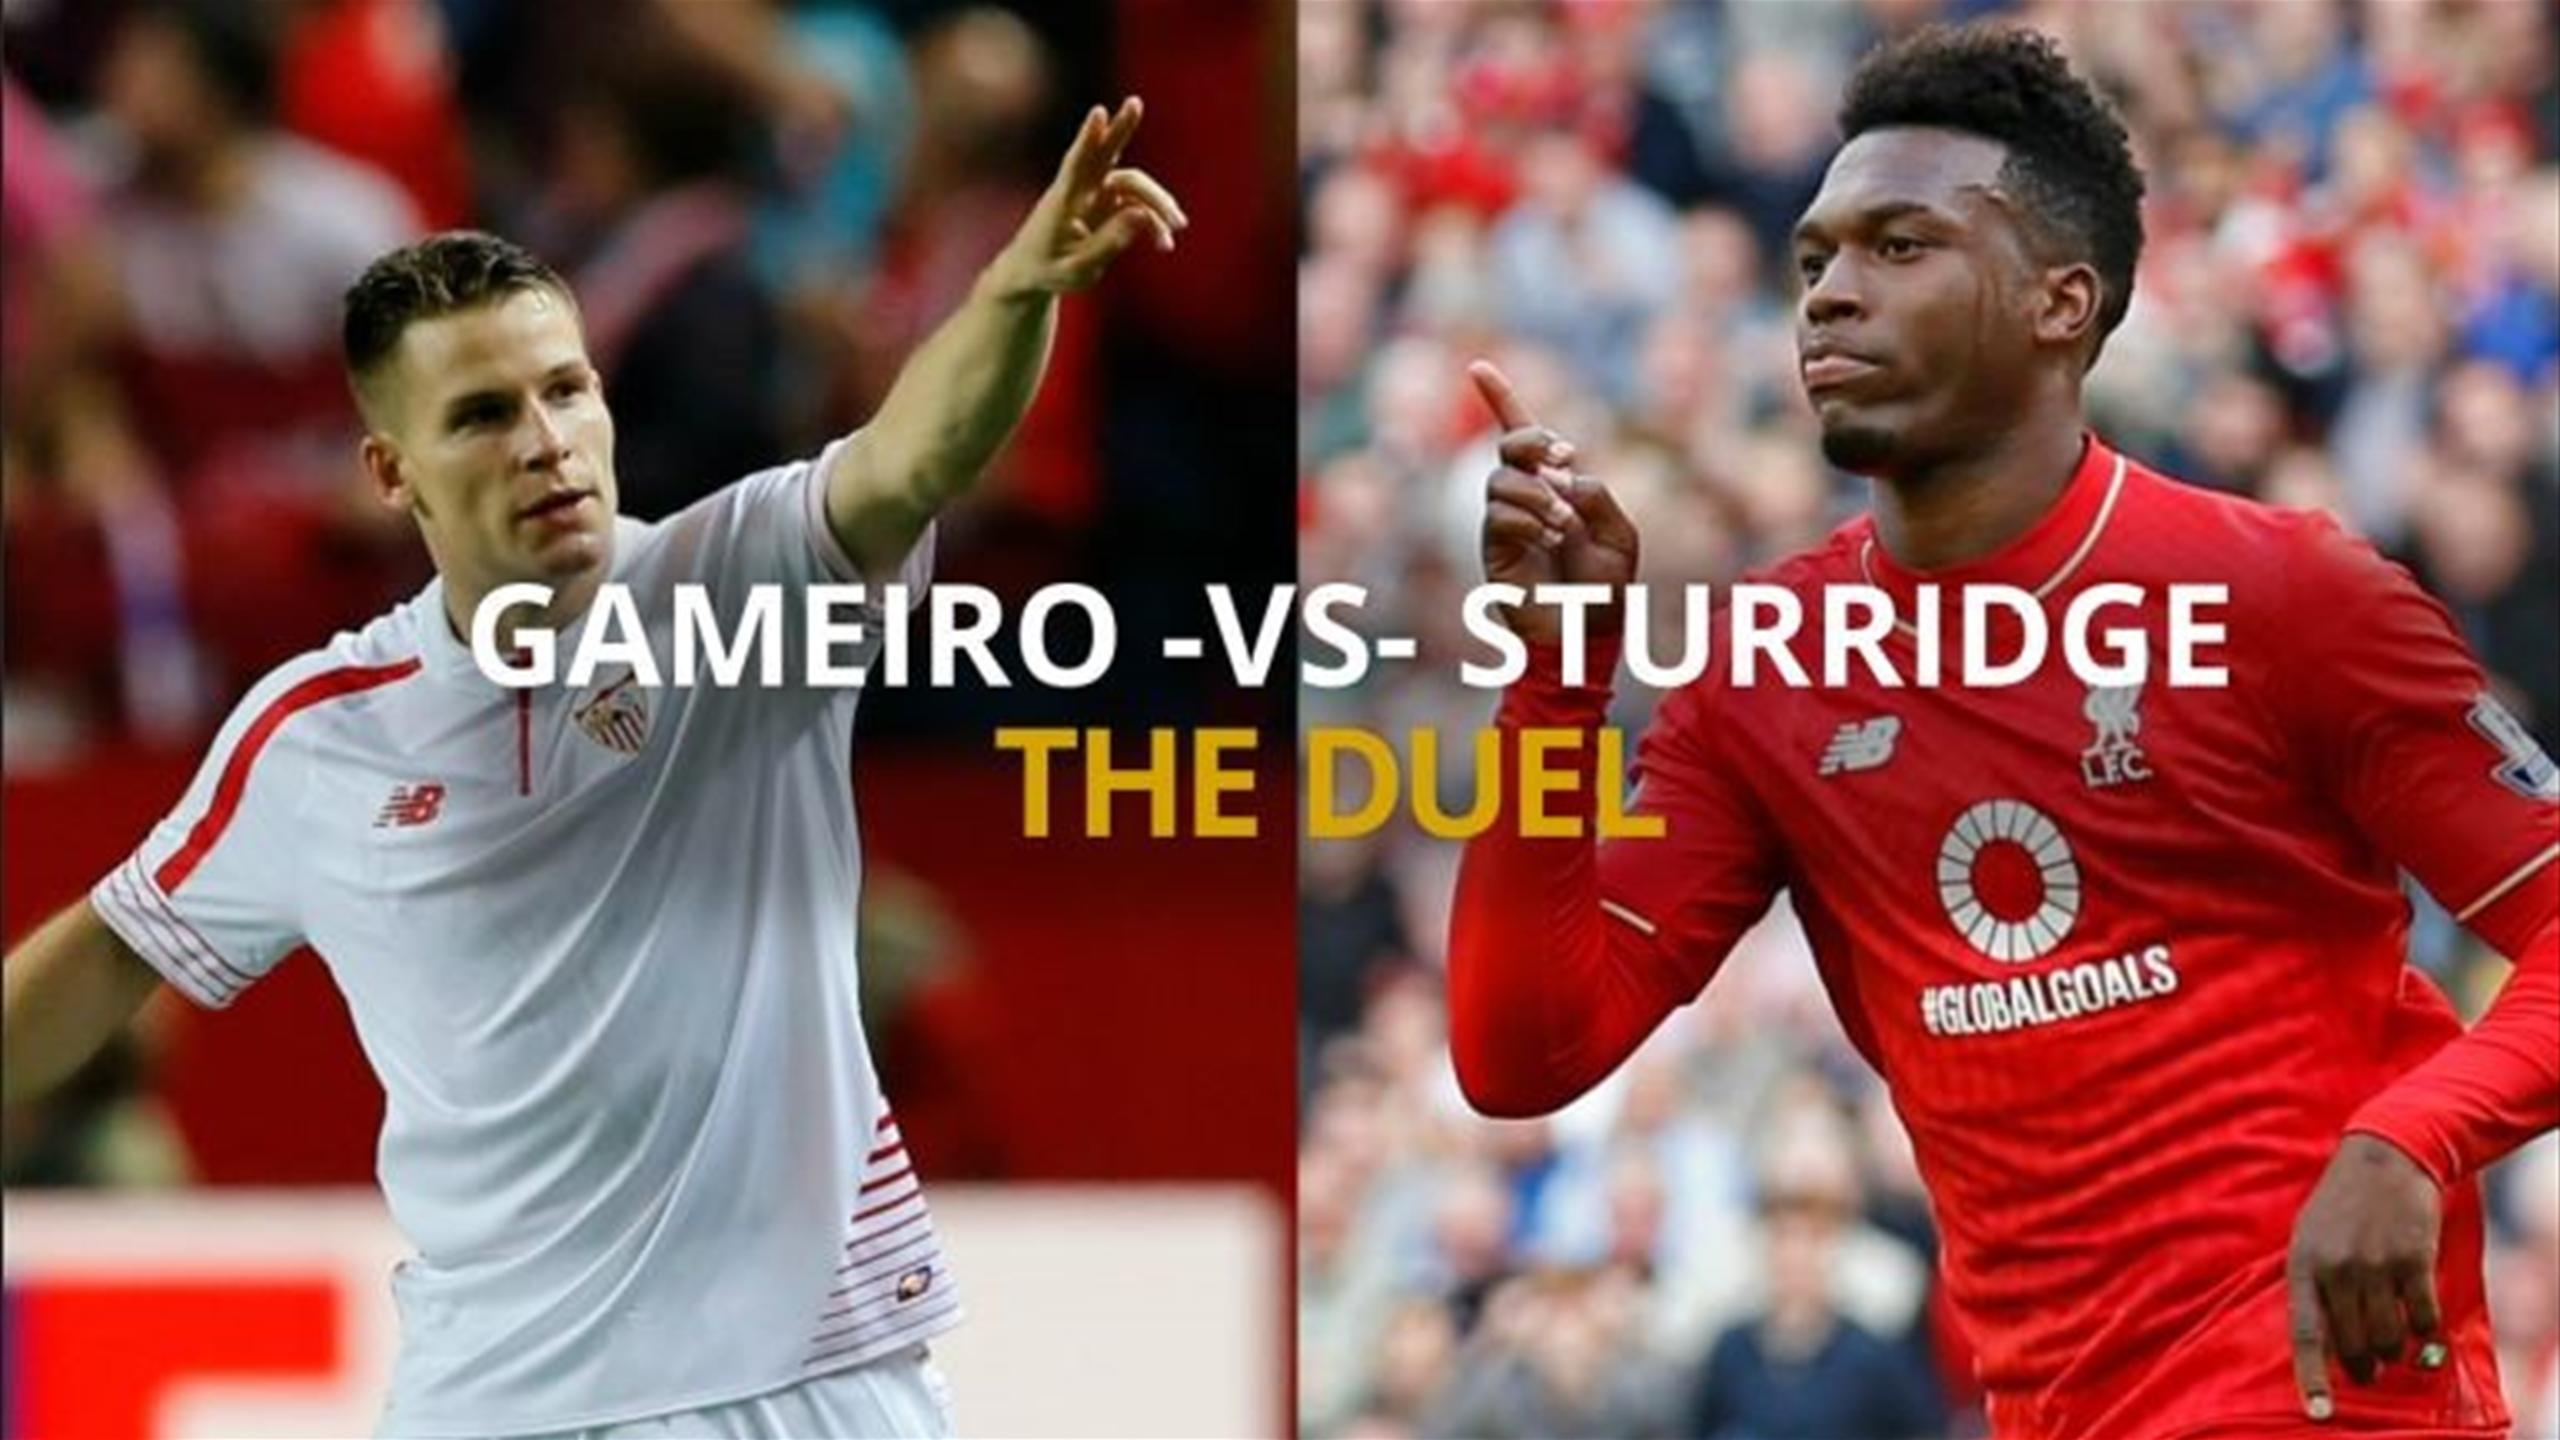 Who is the greatest Europa League final star - Gameiro or Sturridge?